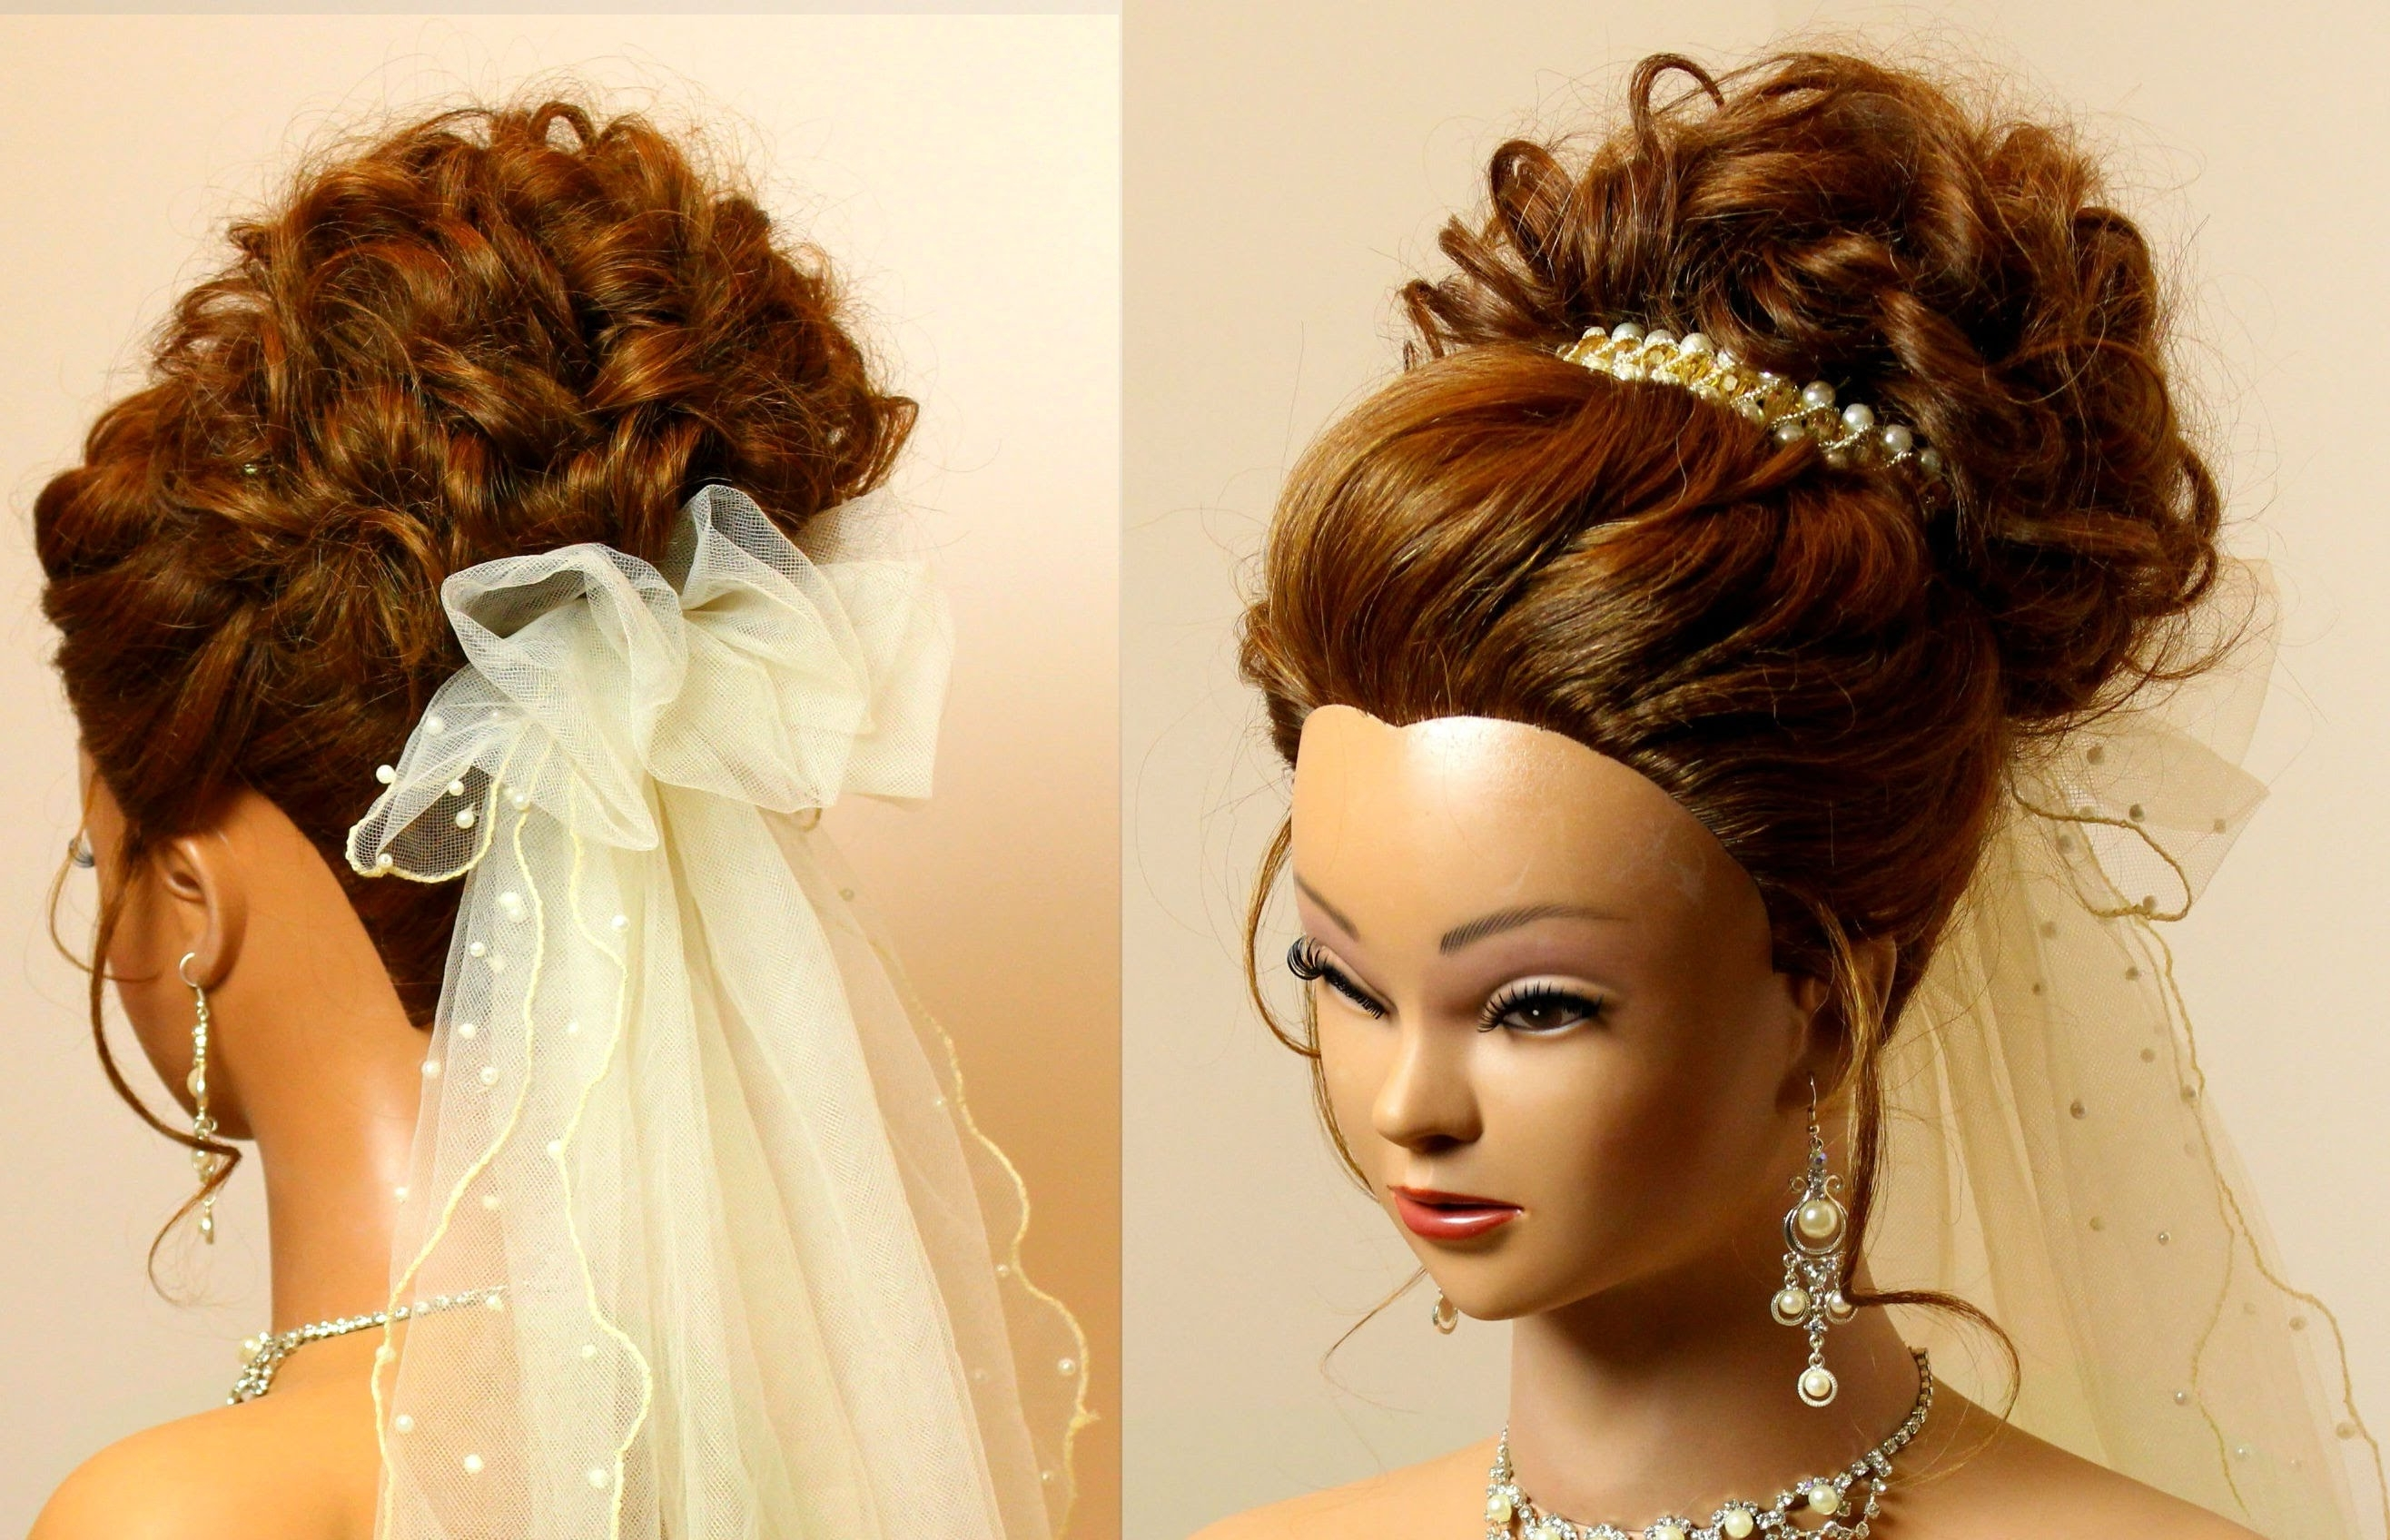 Updo Hairstyles For Medium Hair – Hairstyle For Women & Man With Regard To Bridal Updo Hairstyles For Long Hair (Gallery 6 of 15)